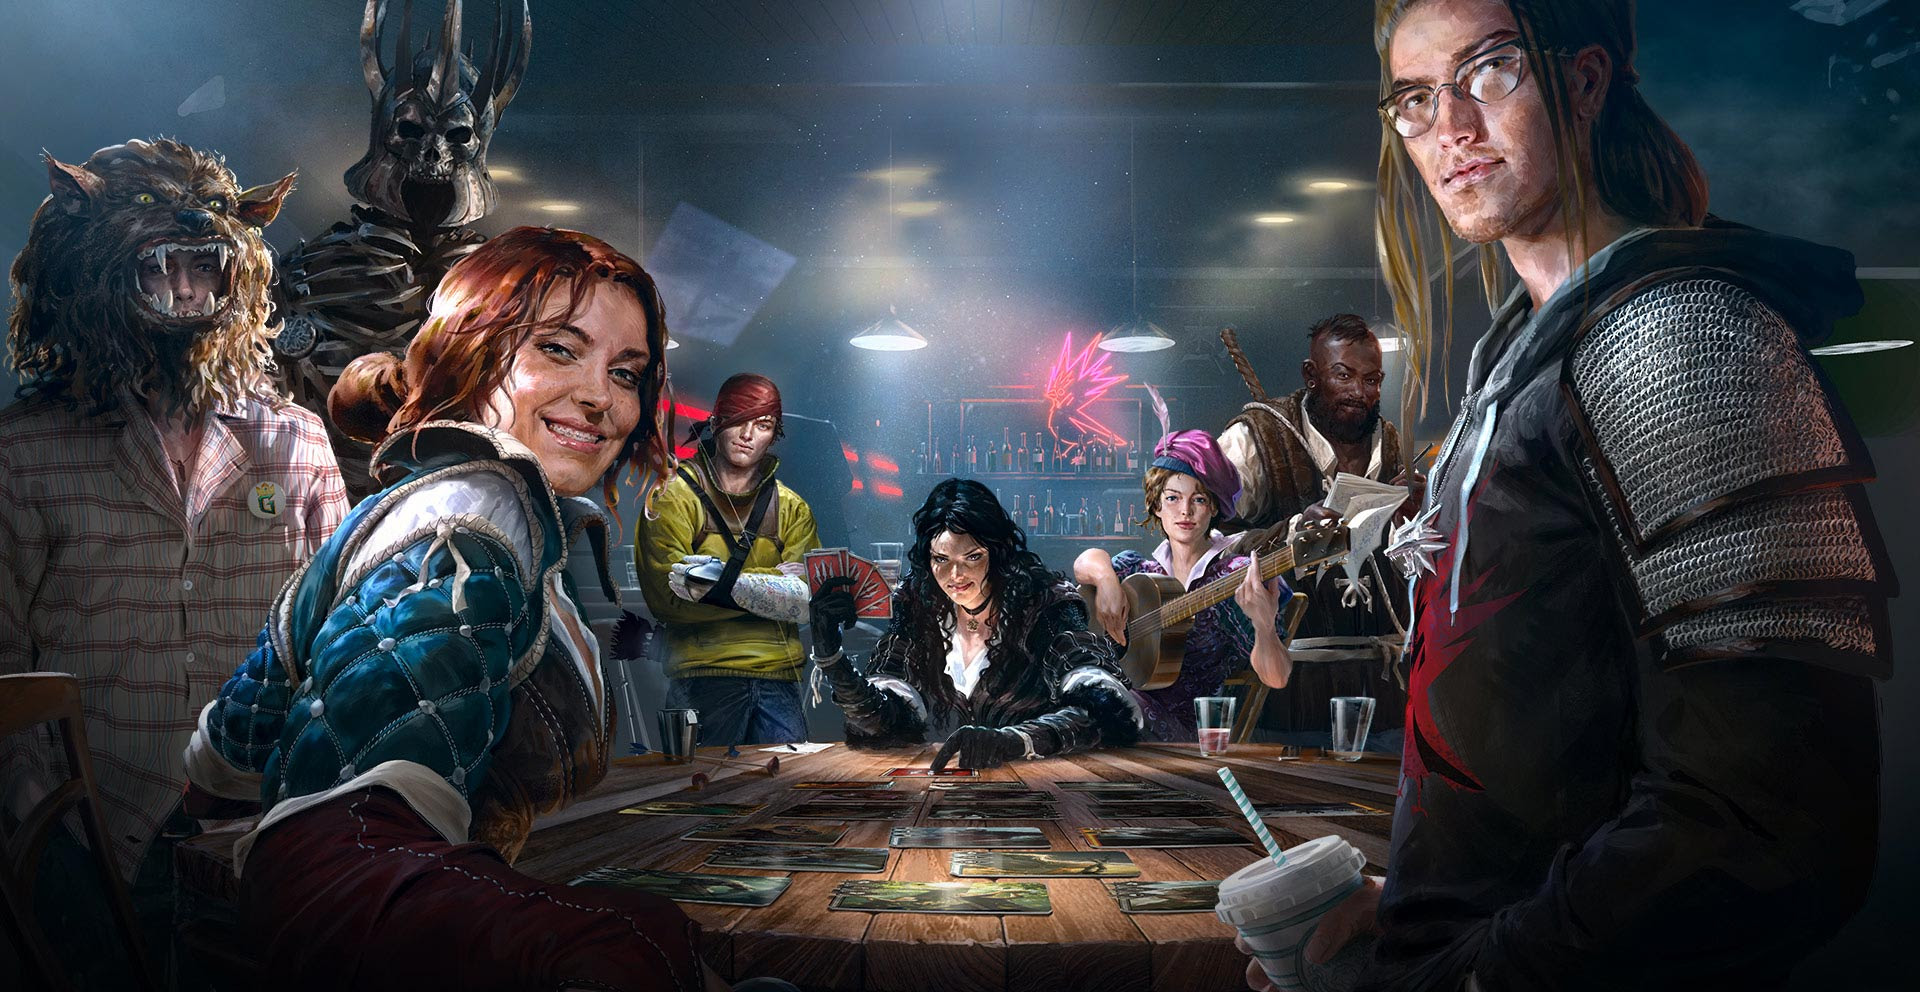 Gwent is getting an open beta soon, but before then closed registrations are shutting down screenshot